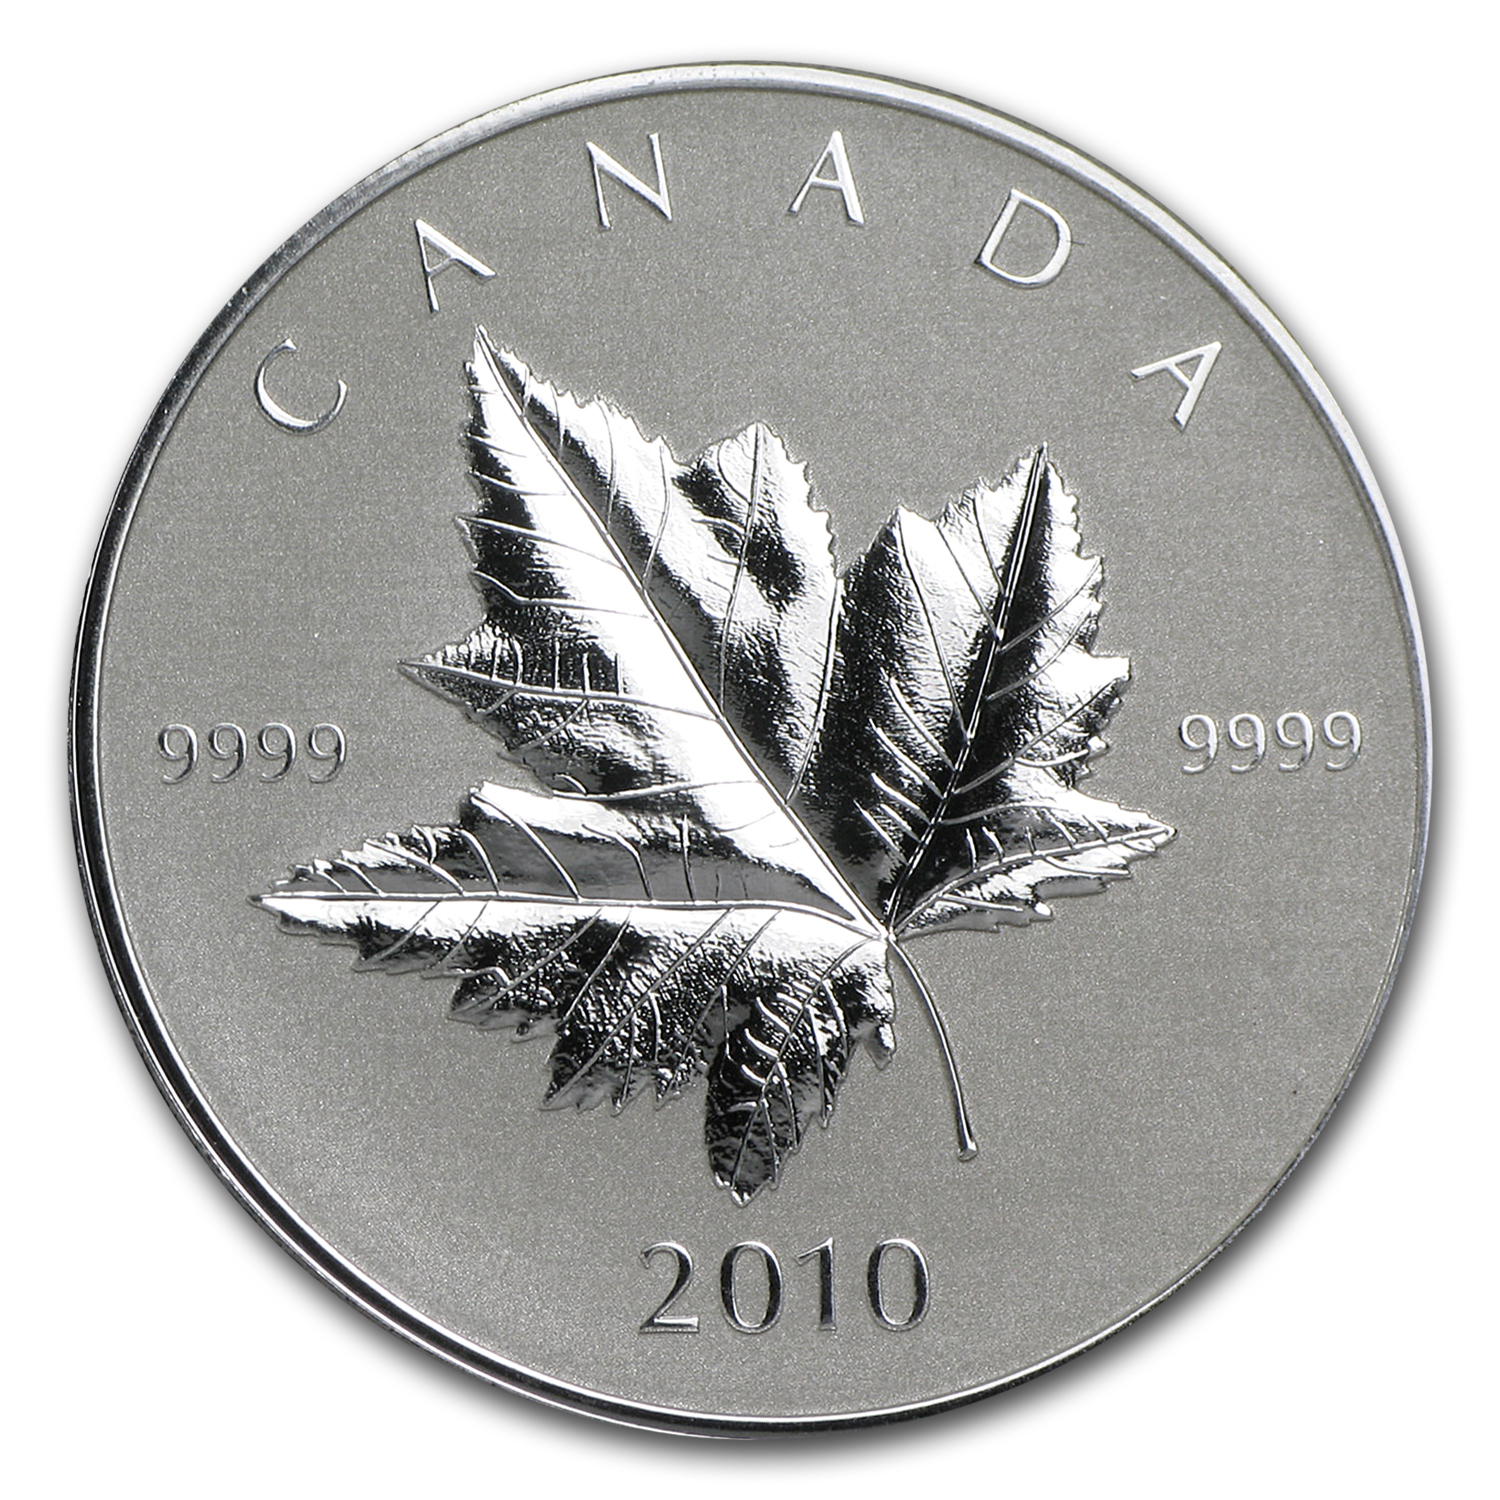 2010 Canada 1 oz Silver $5 Maple Leaf (Piedfort, w/Box & COA)